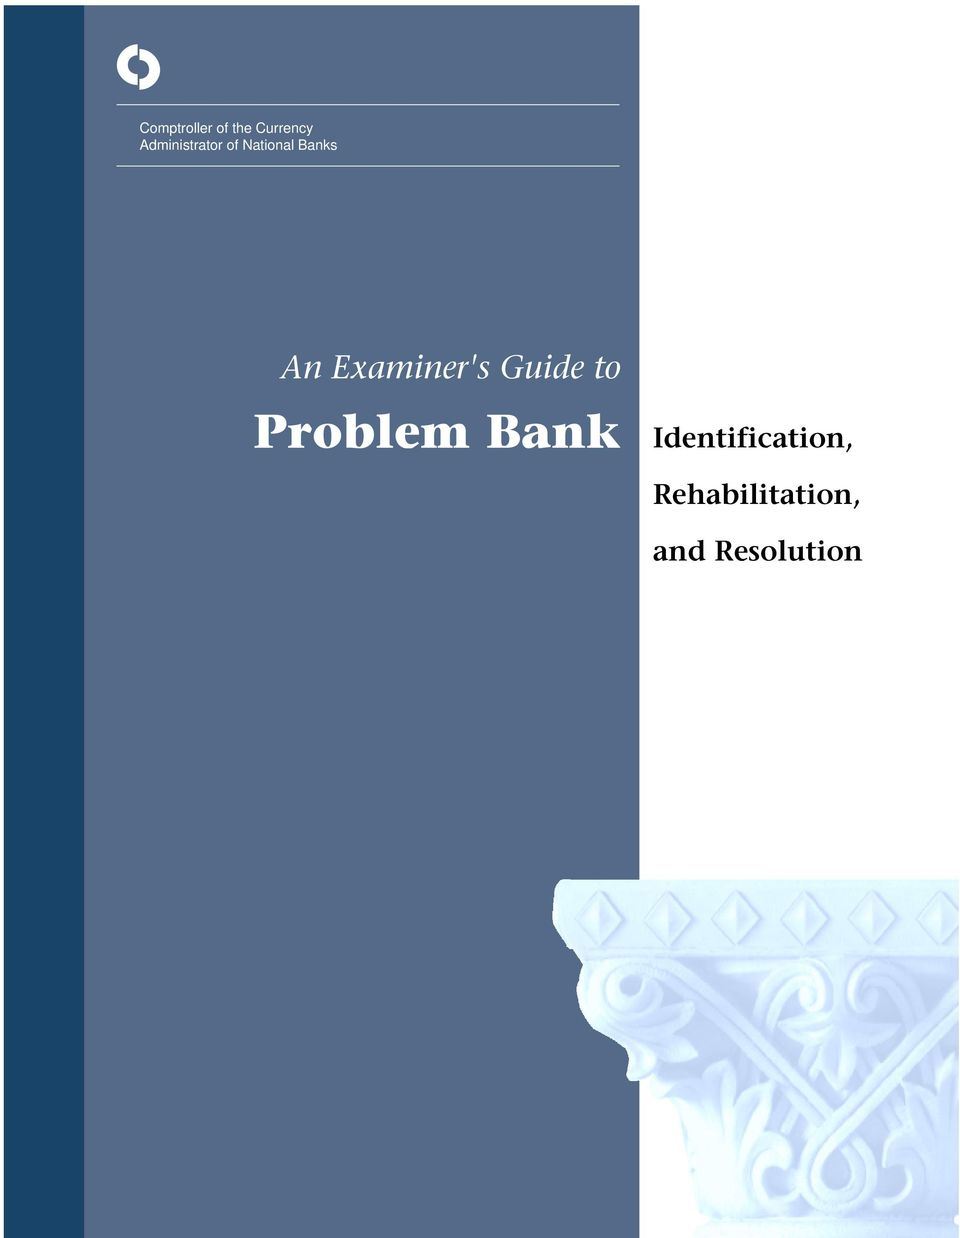 Examiner's Guide to Problem Bank